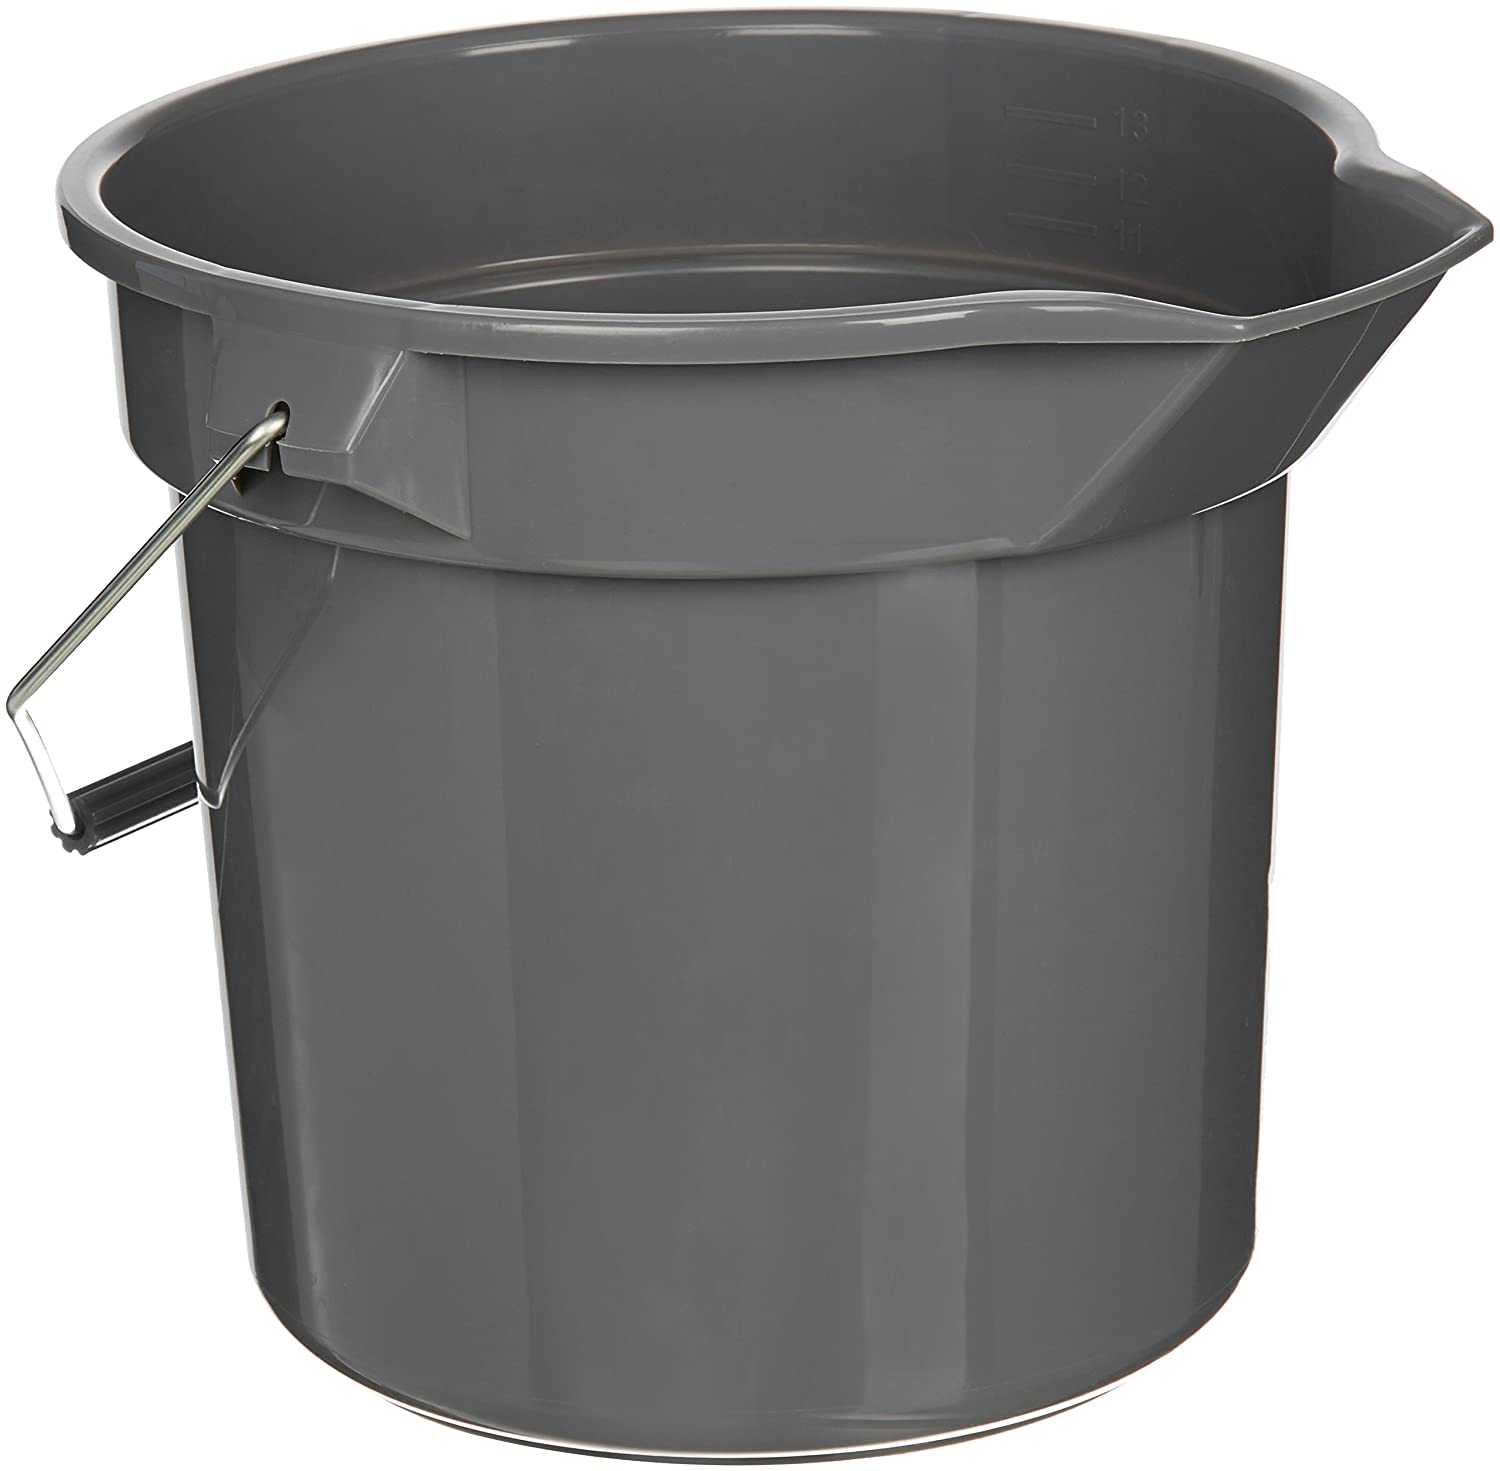 AmazonBasics 10 Quart Plastic Cleaning Bucket, Grey - 6-Pack #RB-10G